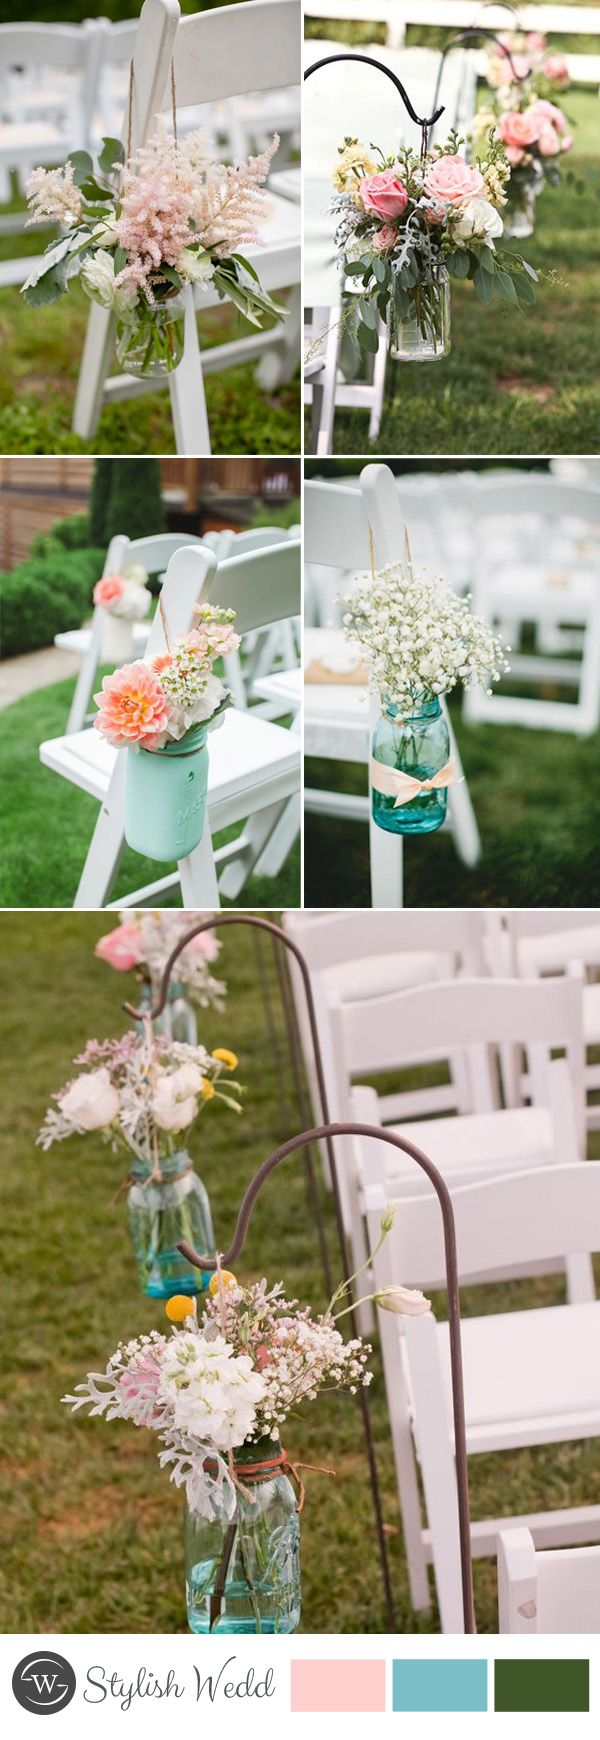 Affordable wedding chair decorations - Best 25 Wedding Chair Decorations Ideas On Pinterest Wedding Chair Covers Chair Decoration Wedding And Simple Wedding Decorations